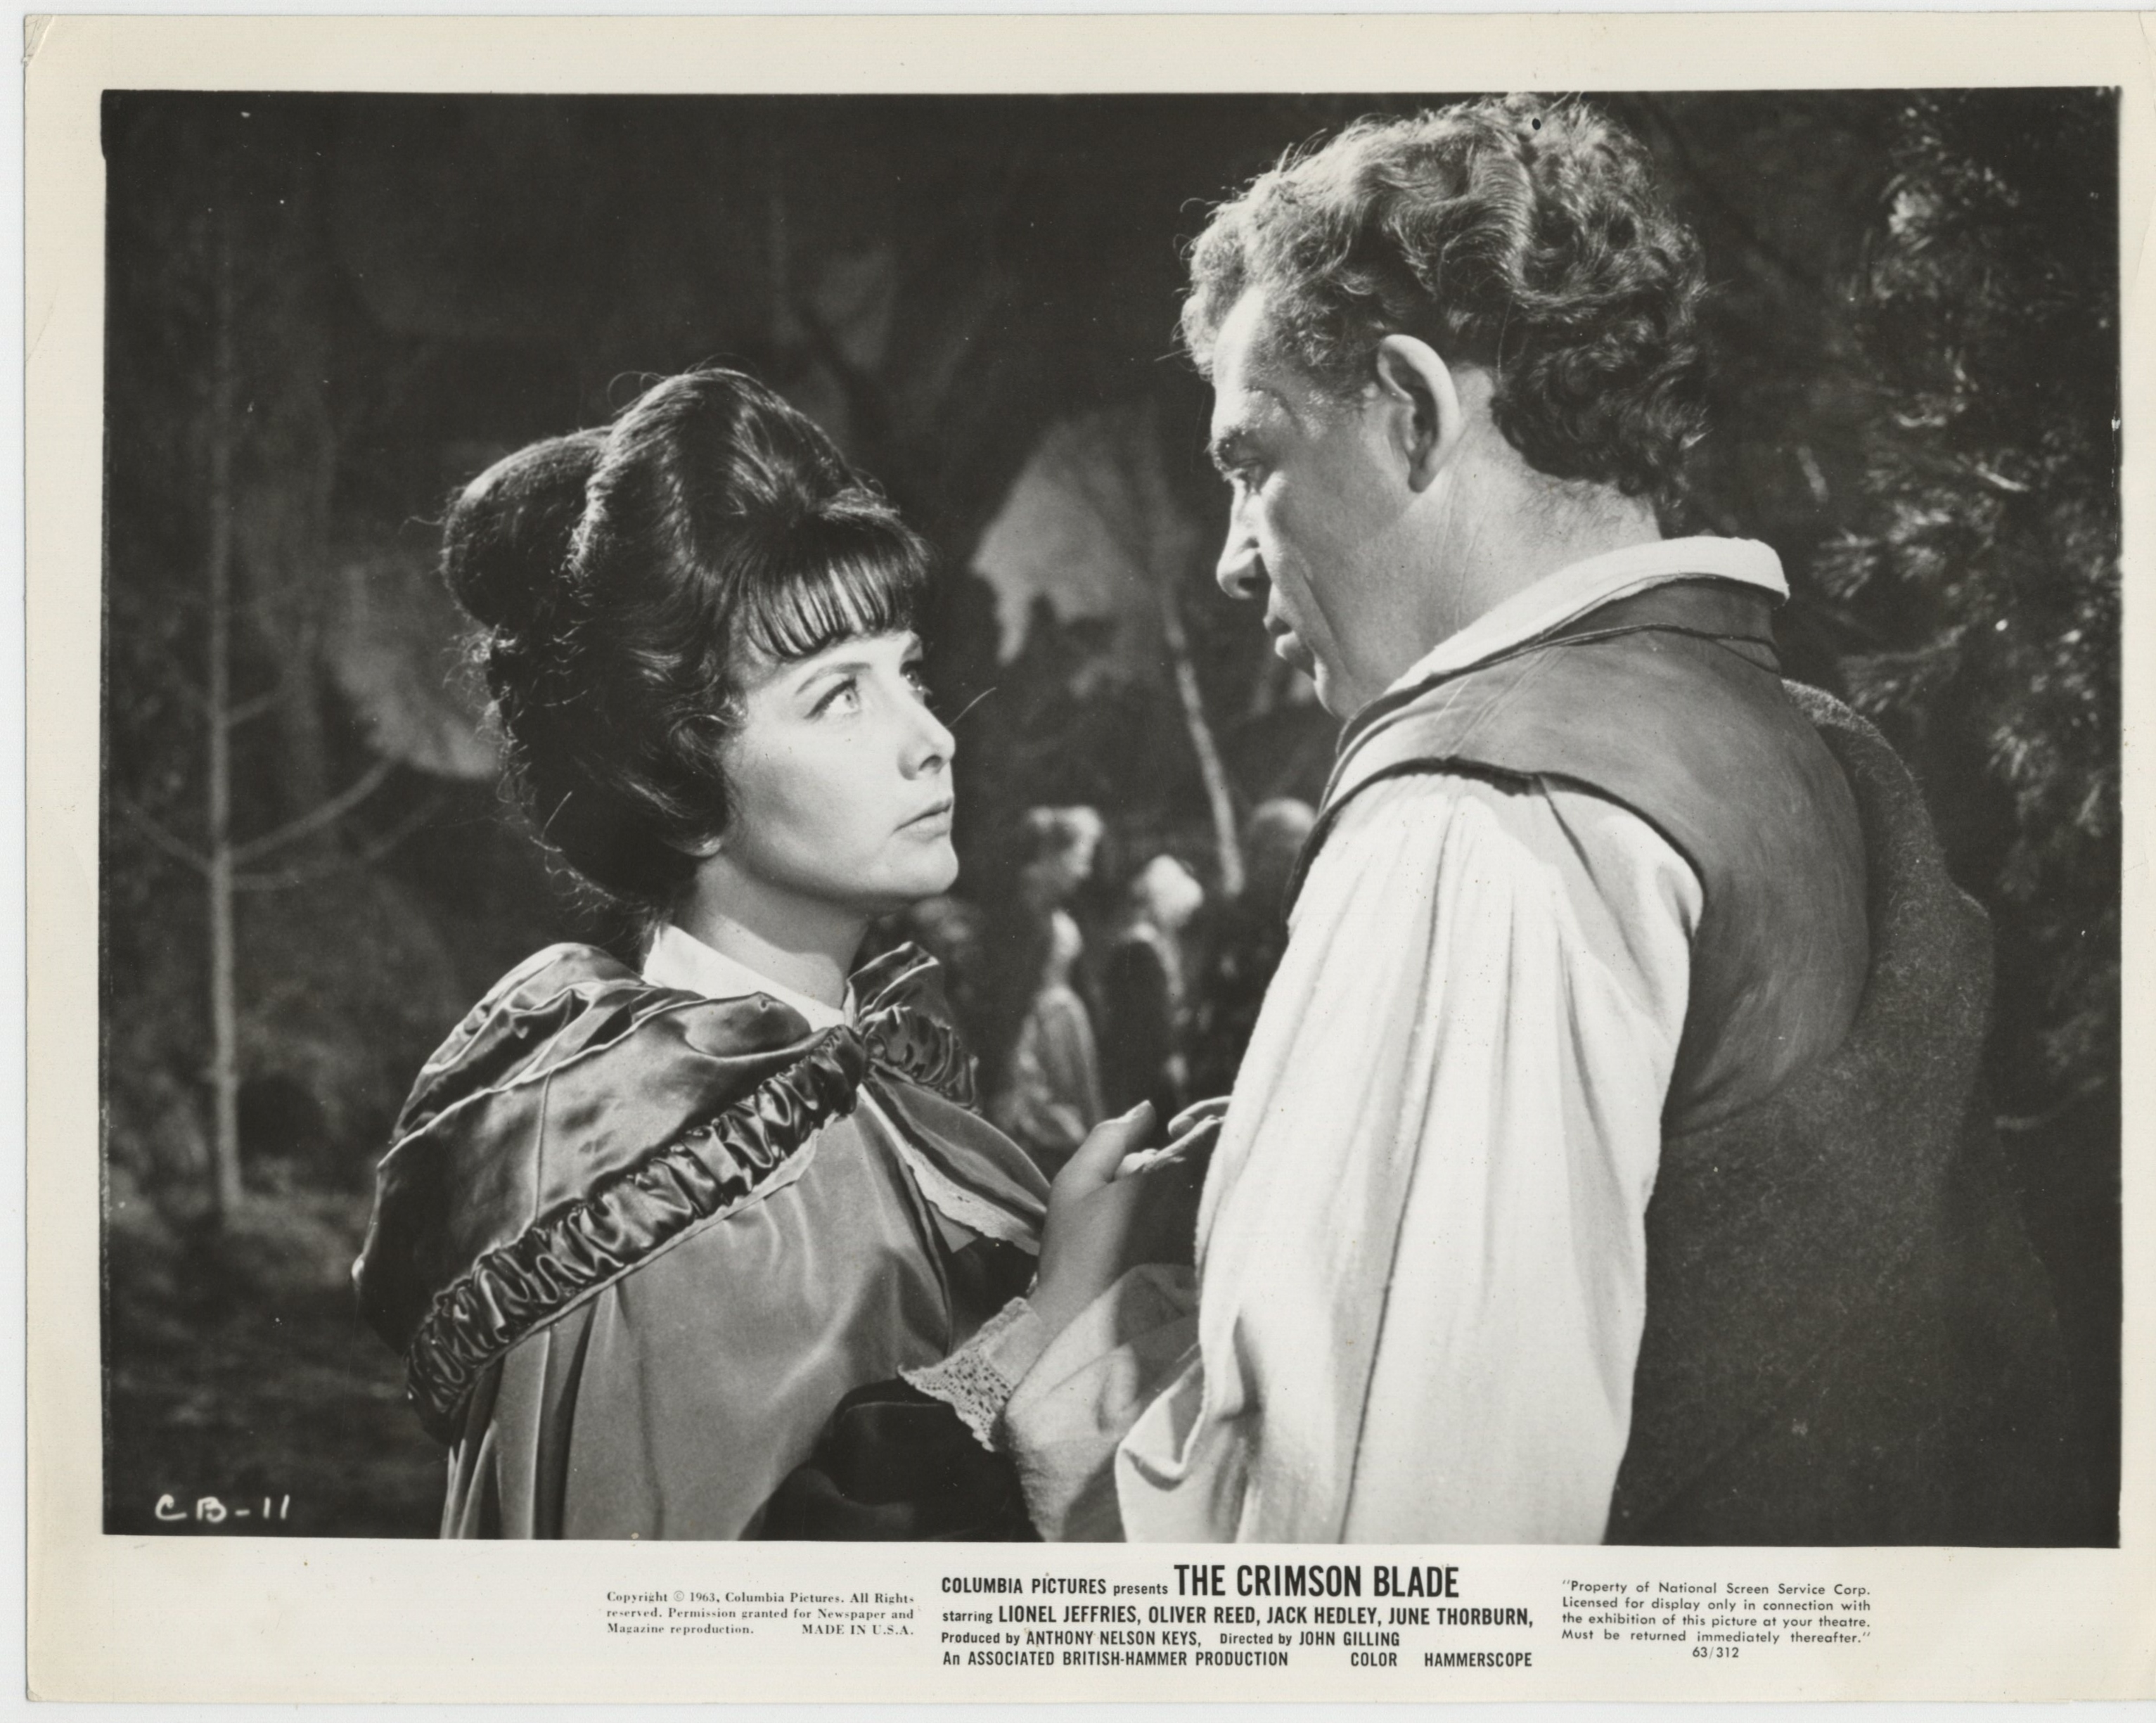 Jack Hedley and June Thorburn in The Scarlet Blade (1963)